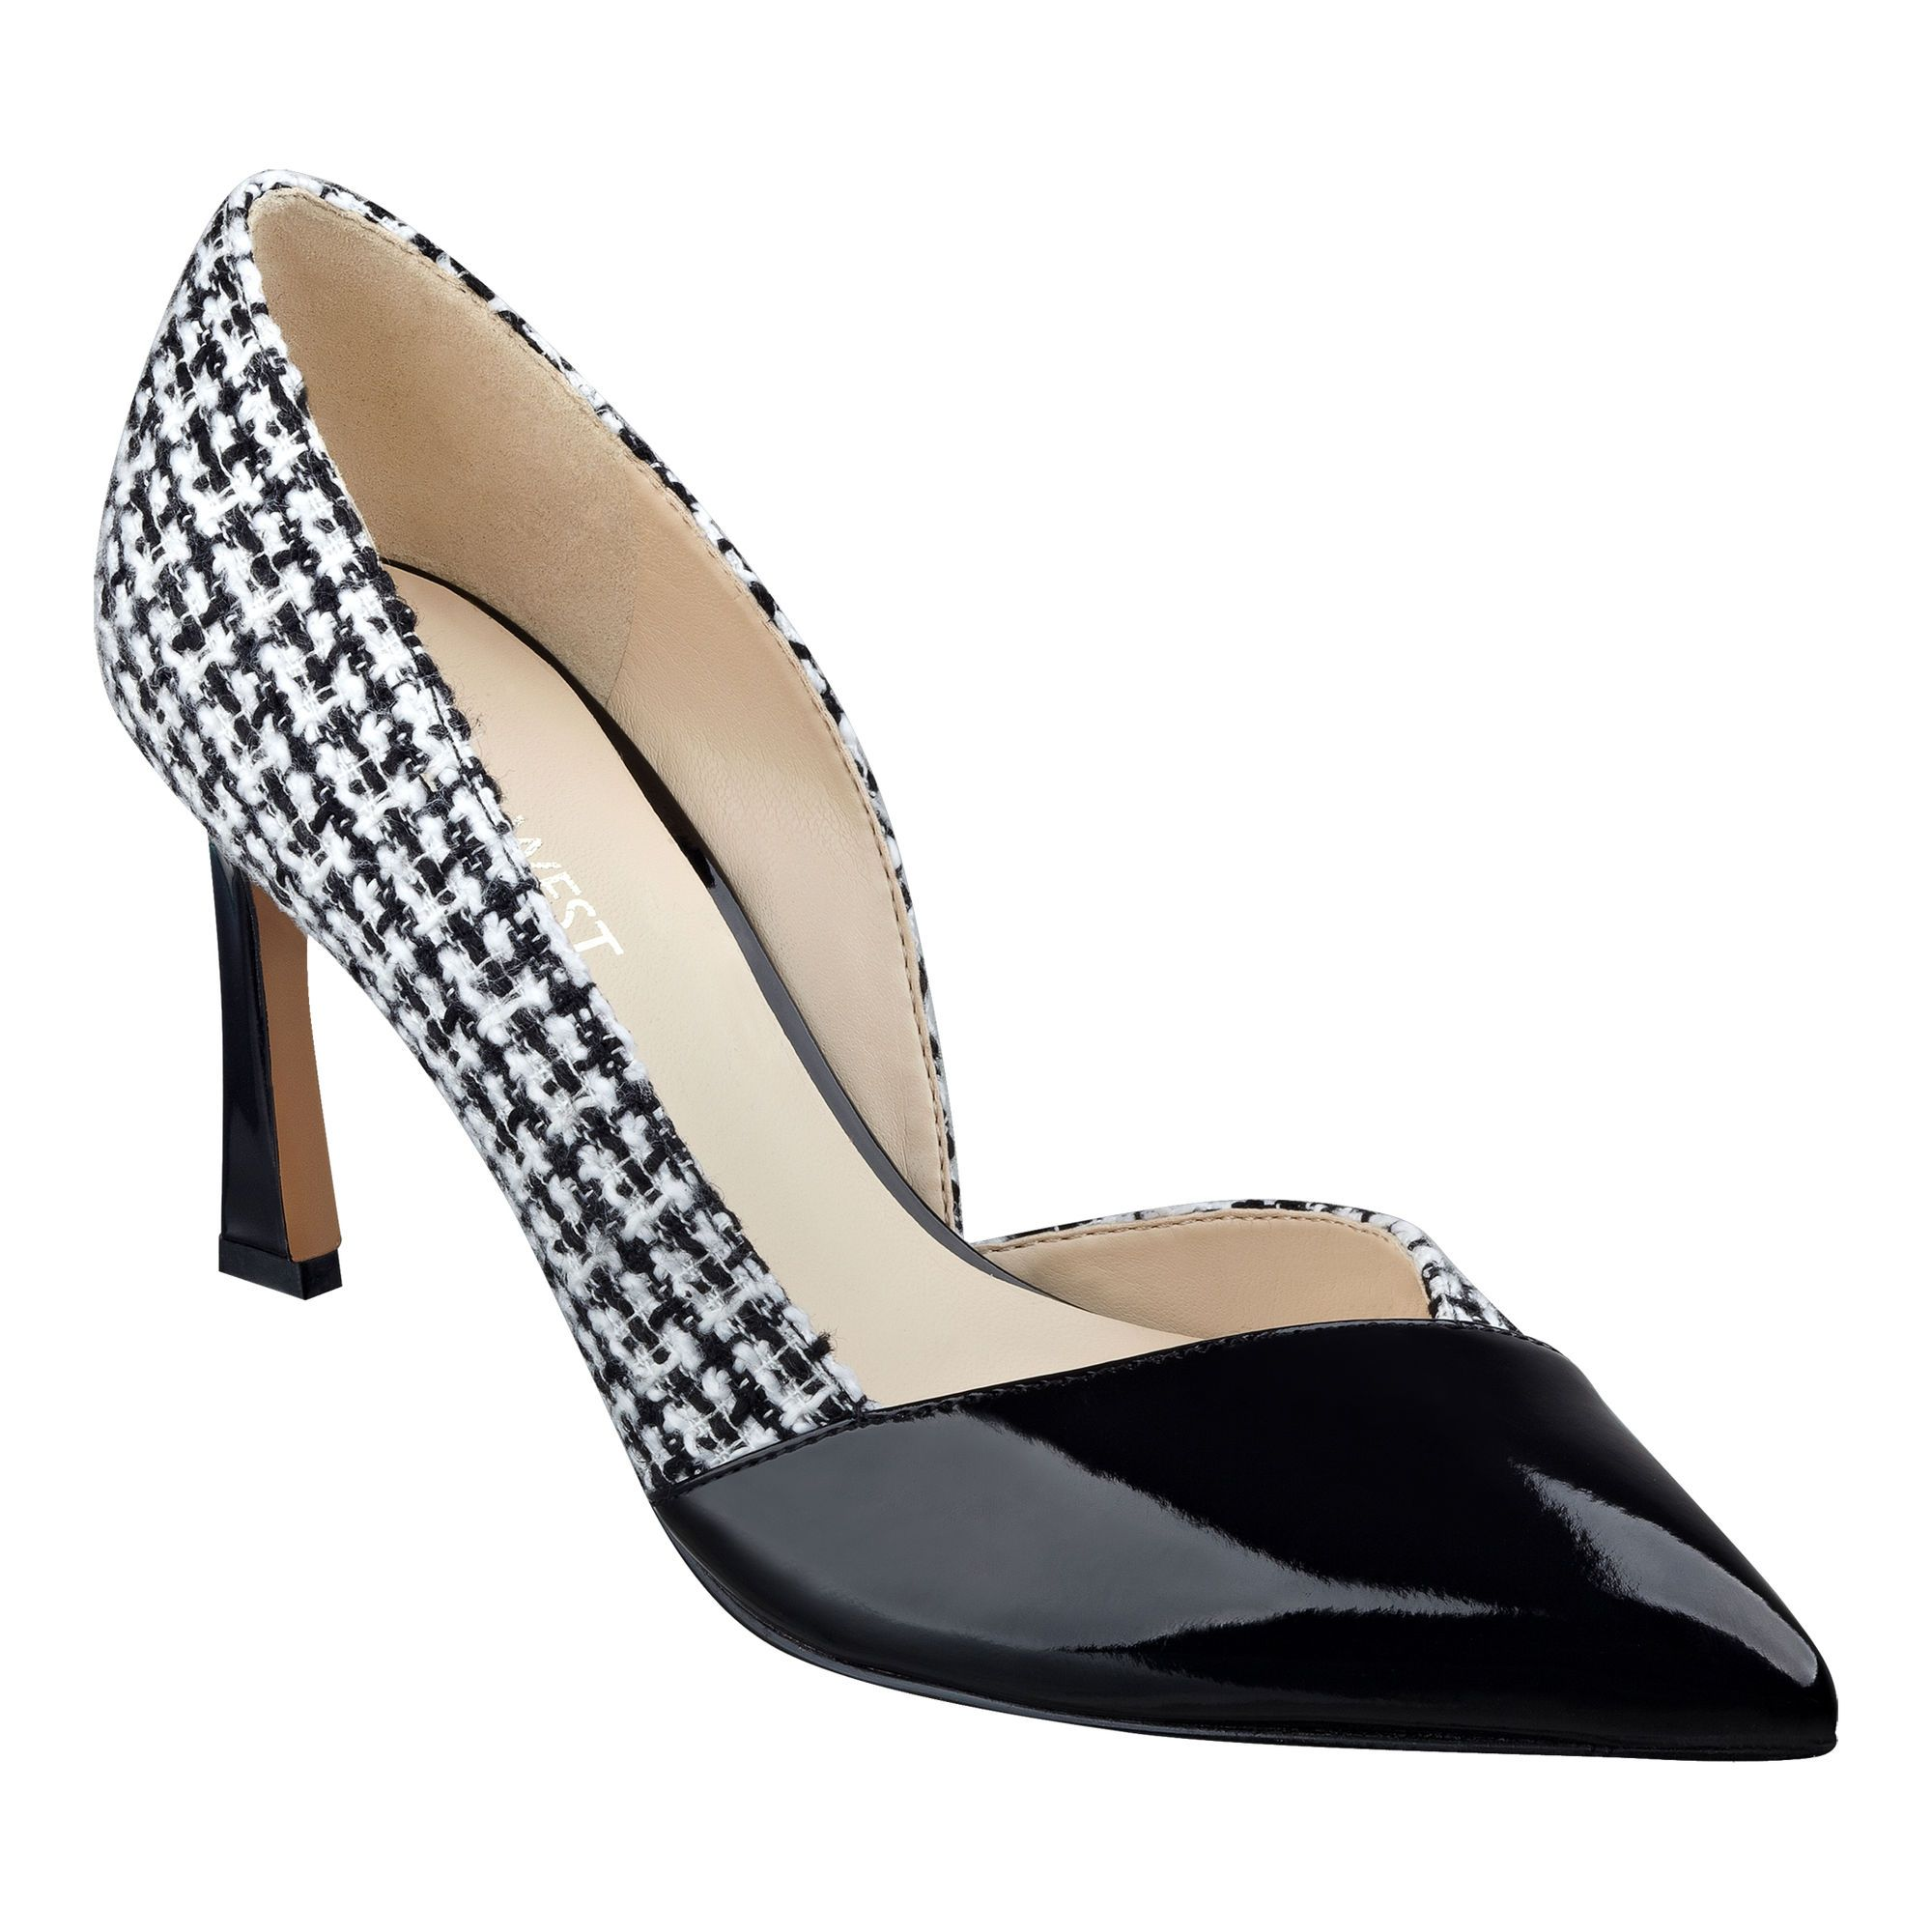 Shoes for Women | Handbags for Women | Nine West